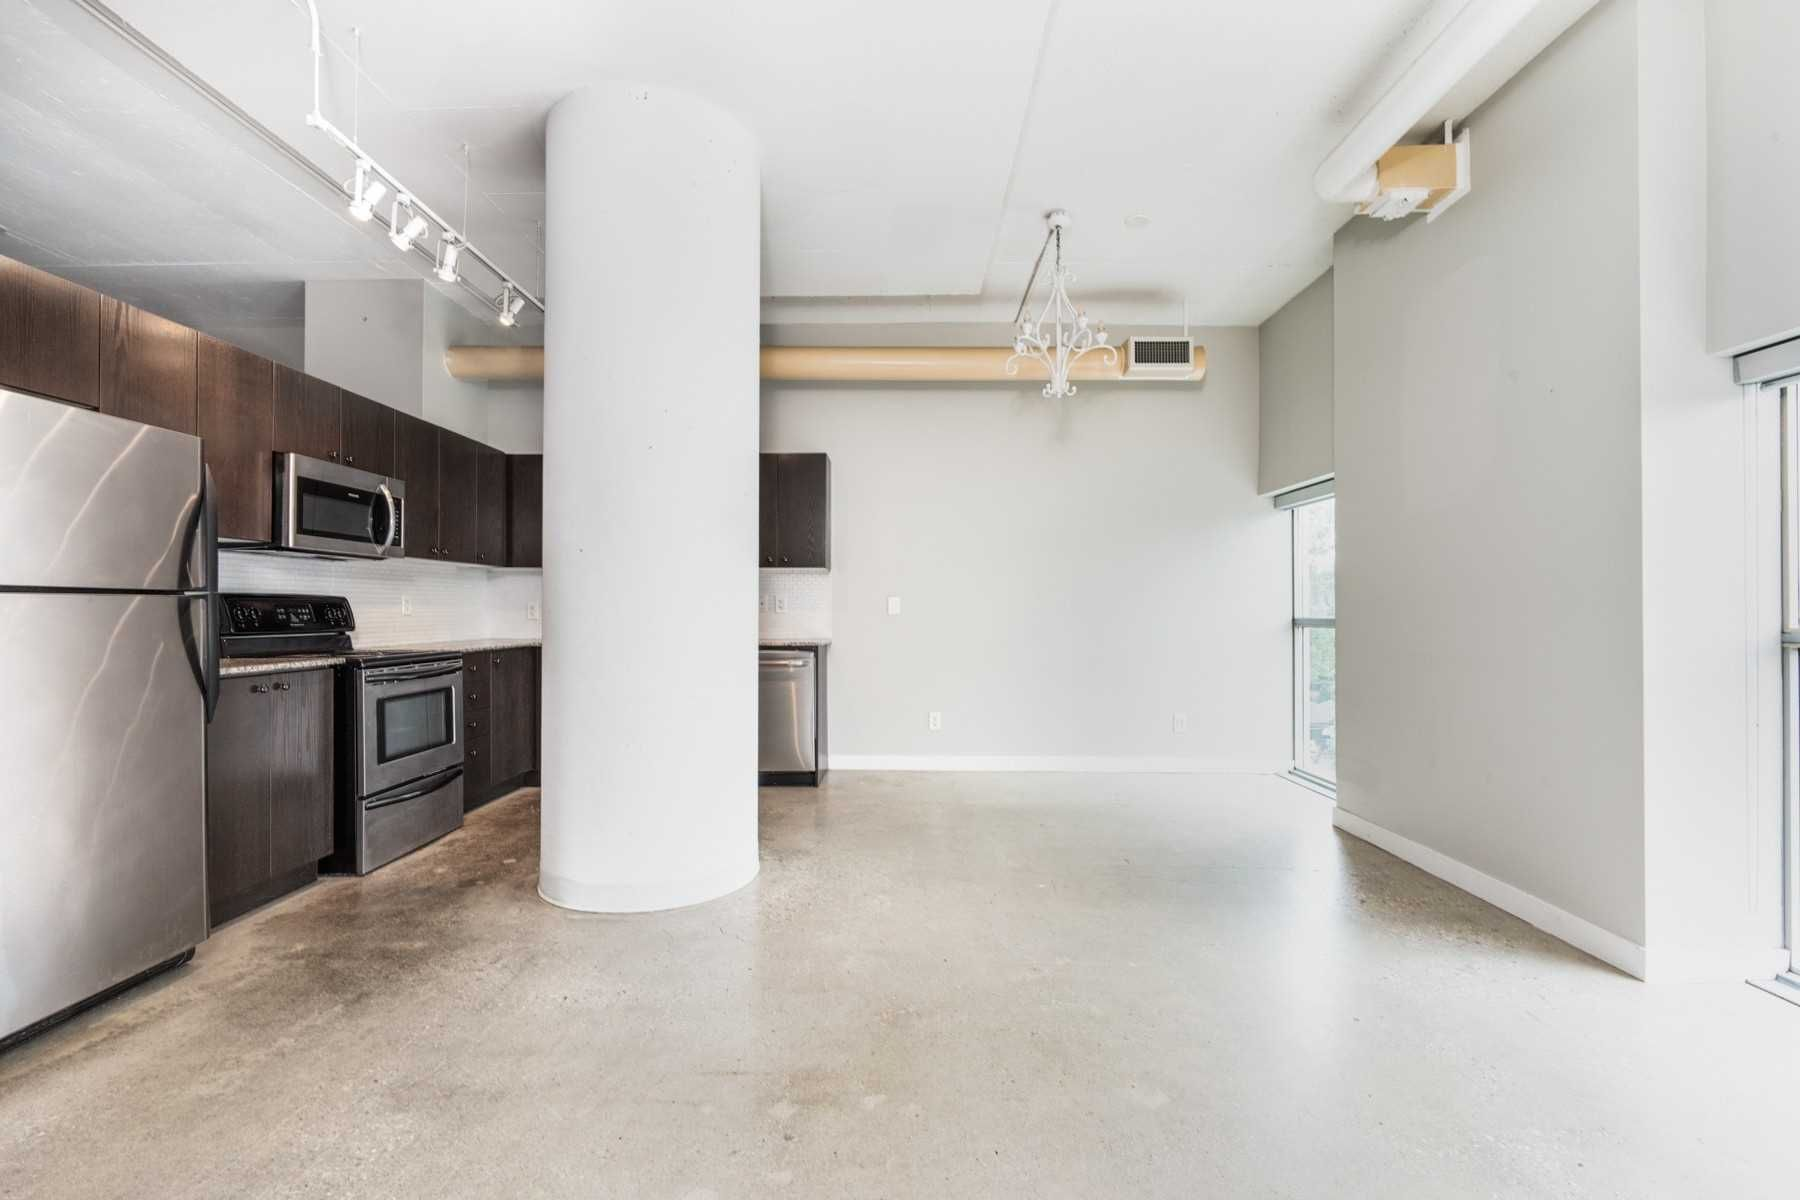 2 Fieldway Rd, unit 310 for rent in Toronto - image #2